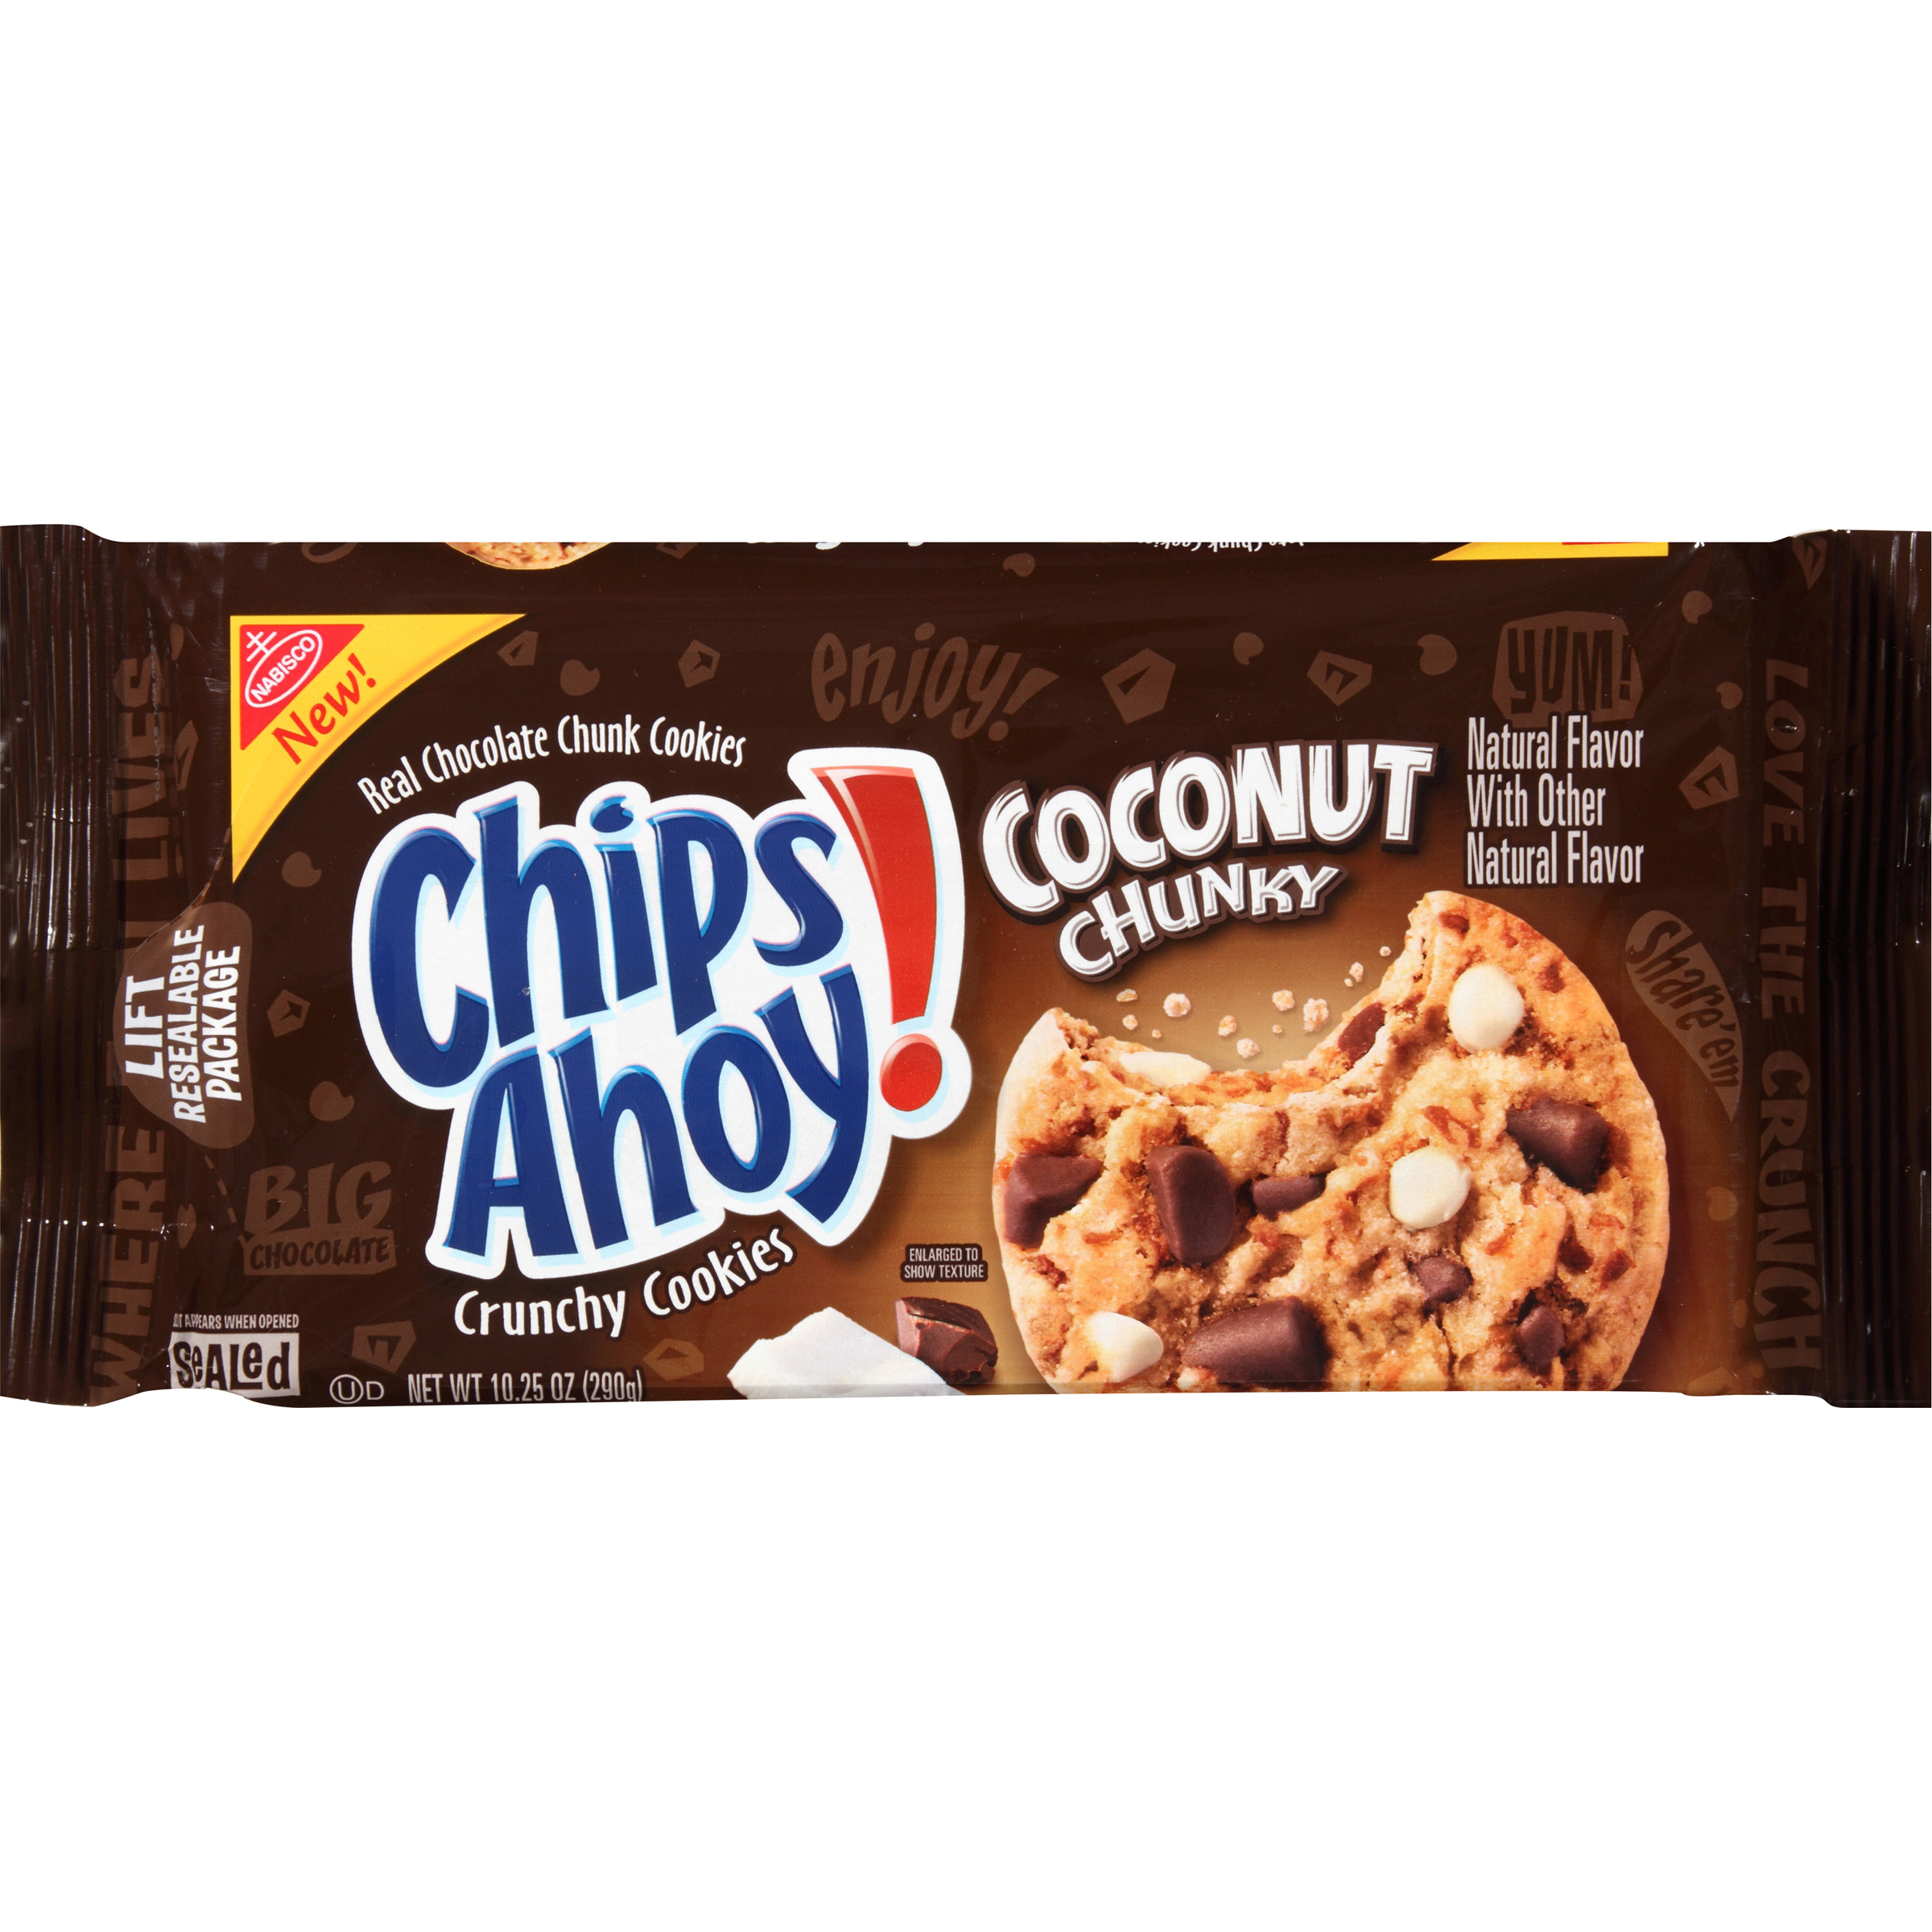 Nabisco Chips Ahoy! Coconut Chunky Chocolate Chunk Cookies, 10.25 oz